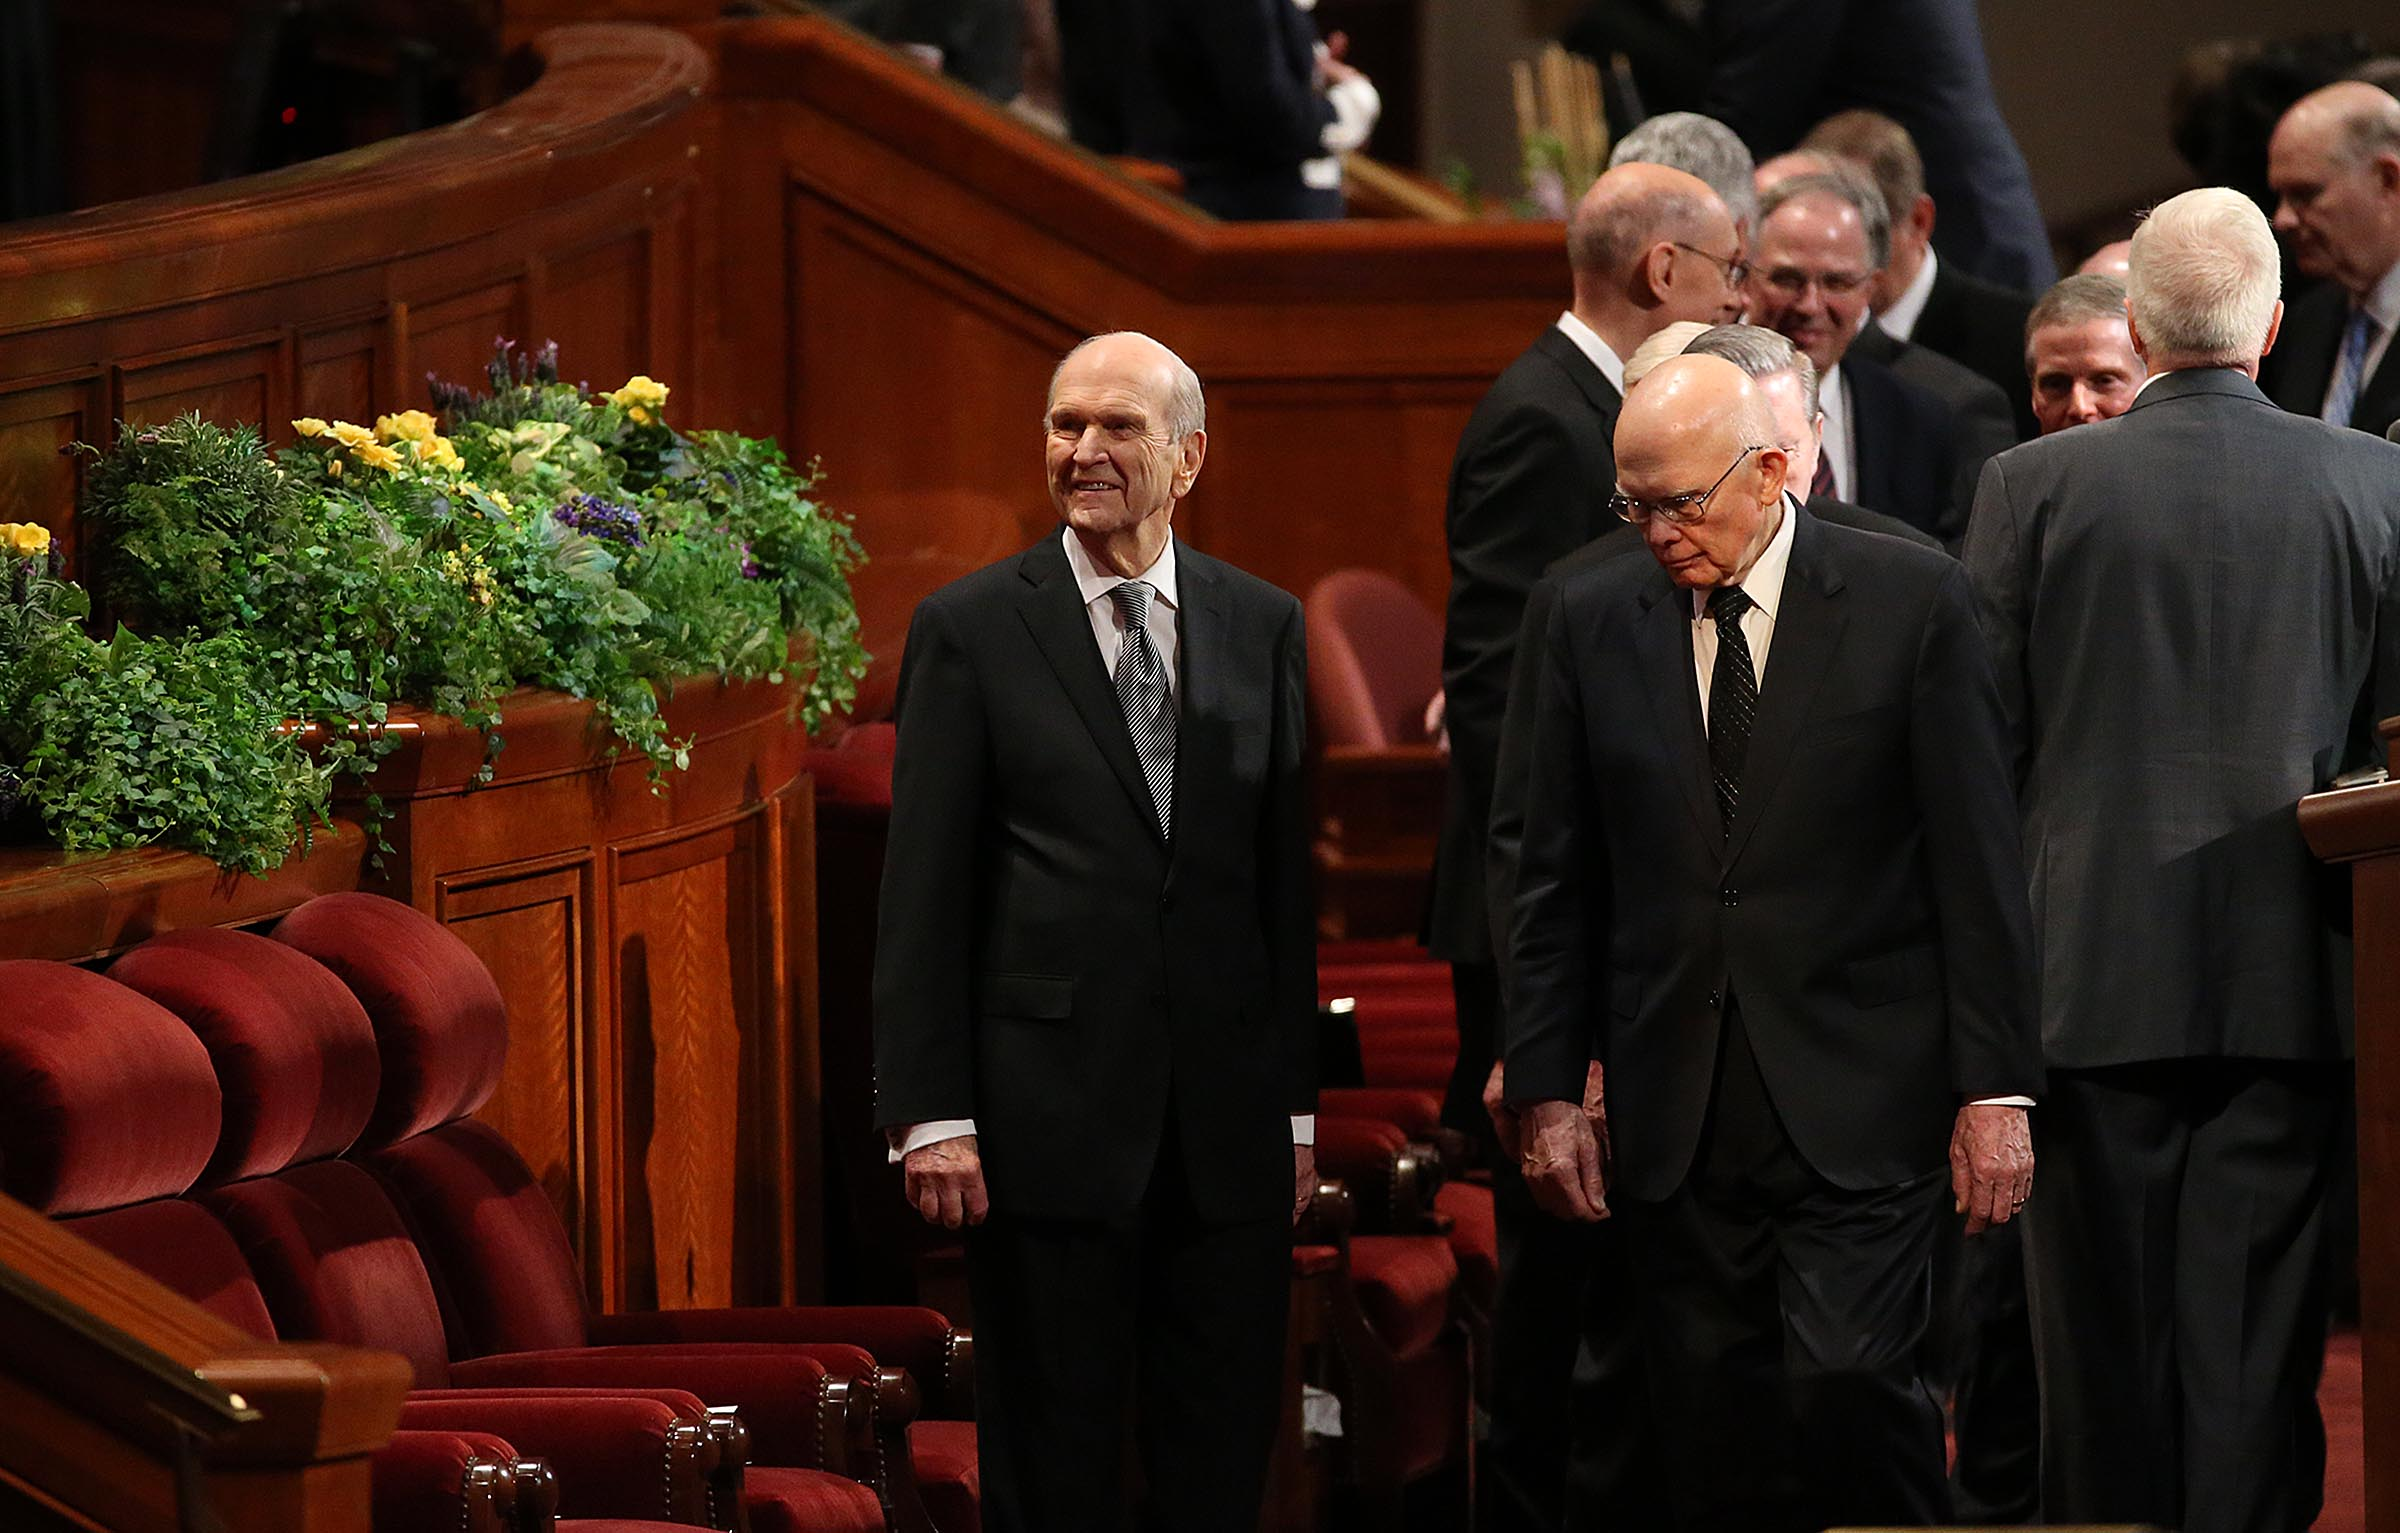 President Russell M. Nelson, president of the Church's Quorum of the Twelve Apostles, and Elder Dallin H. Oakes, a member of the Quorum of the Twelve Apostles, arrive for President Thomas S. Monson's funeral at the Conference Center in Salt Lake City on Friday, Jan. 12, 2018.